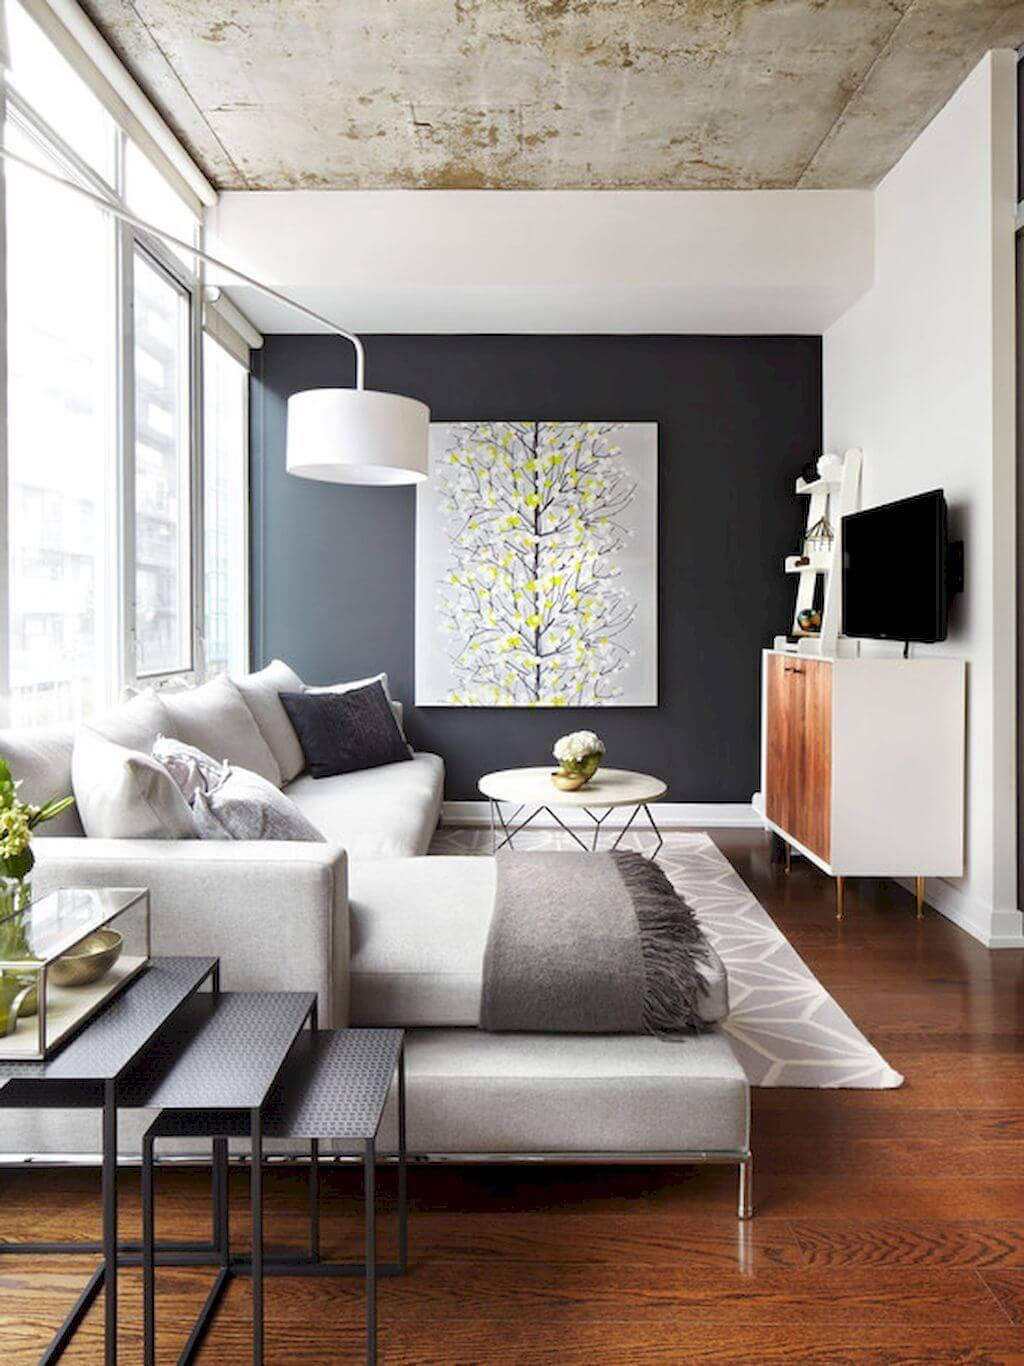 Contemporary Furniture For Small Living Room 25 Best Small Living Room Decor And Design Ideas For 2019